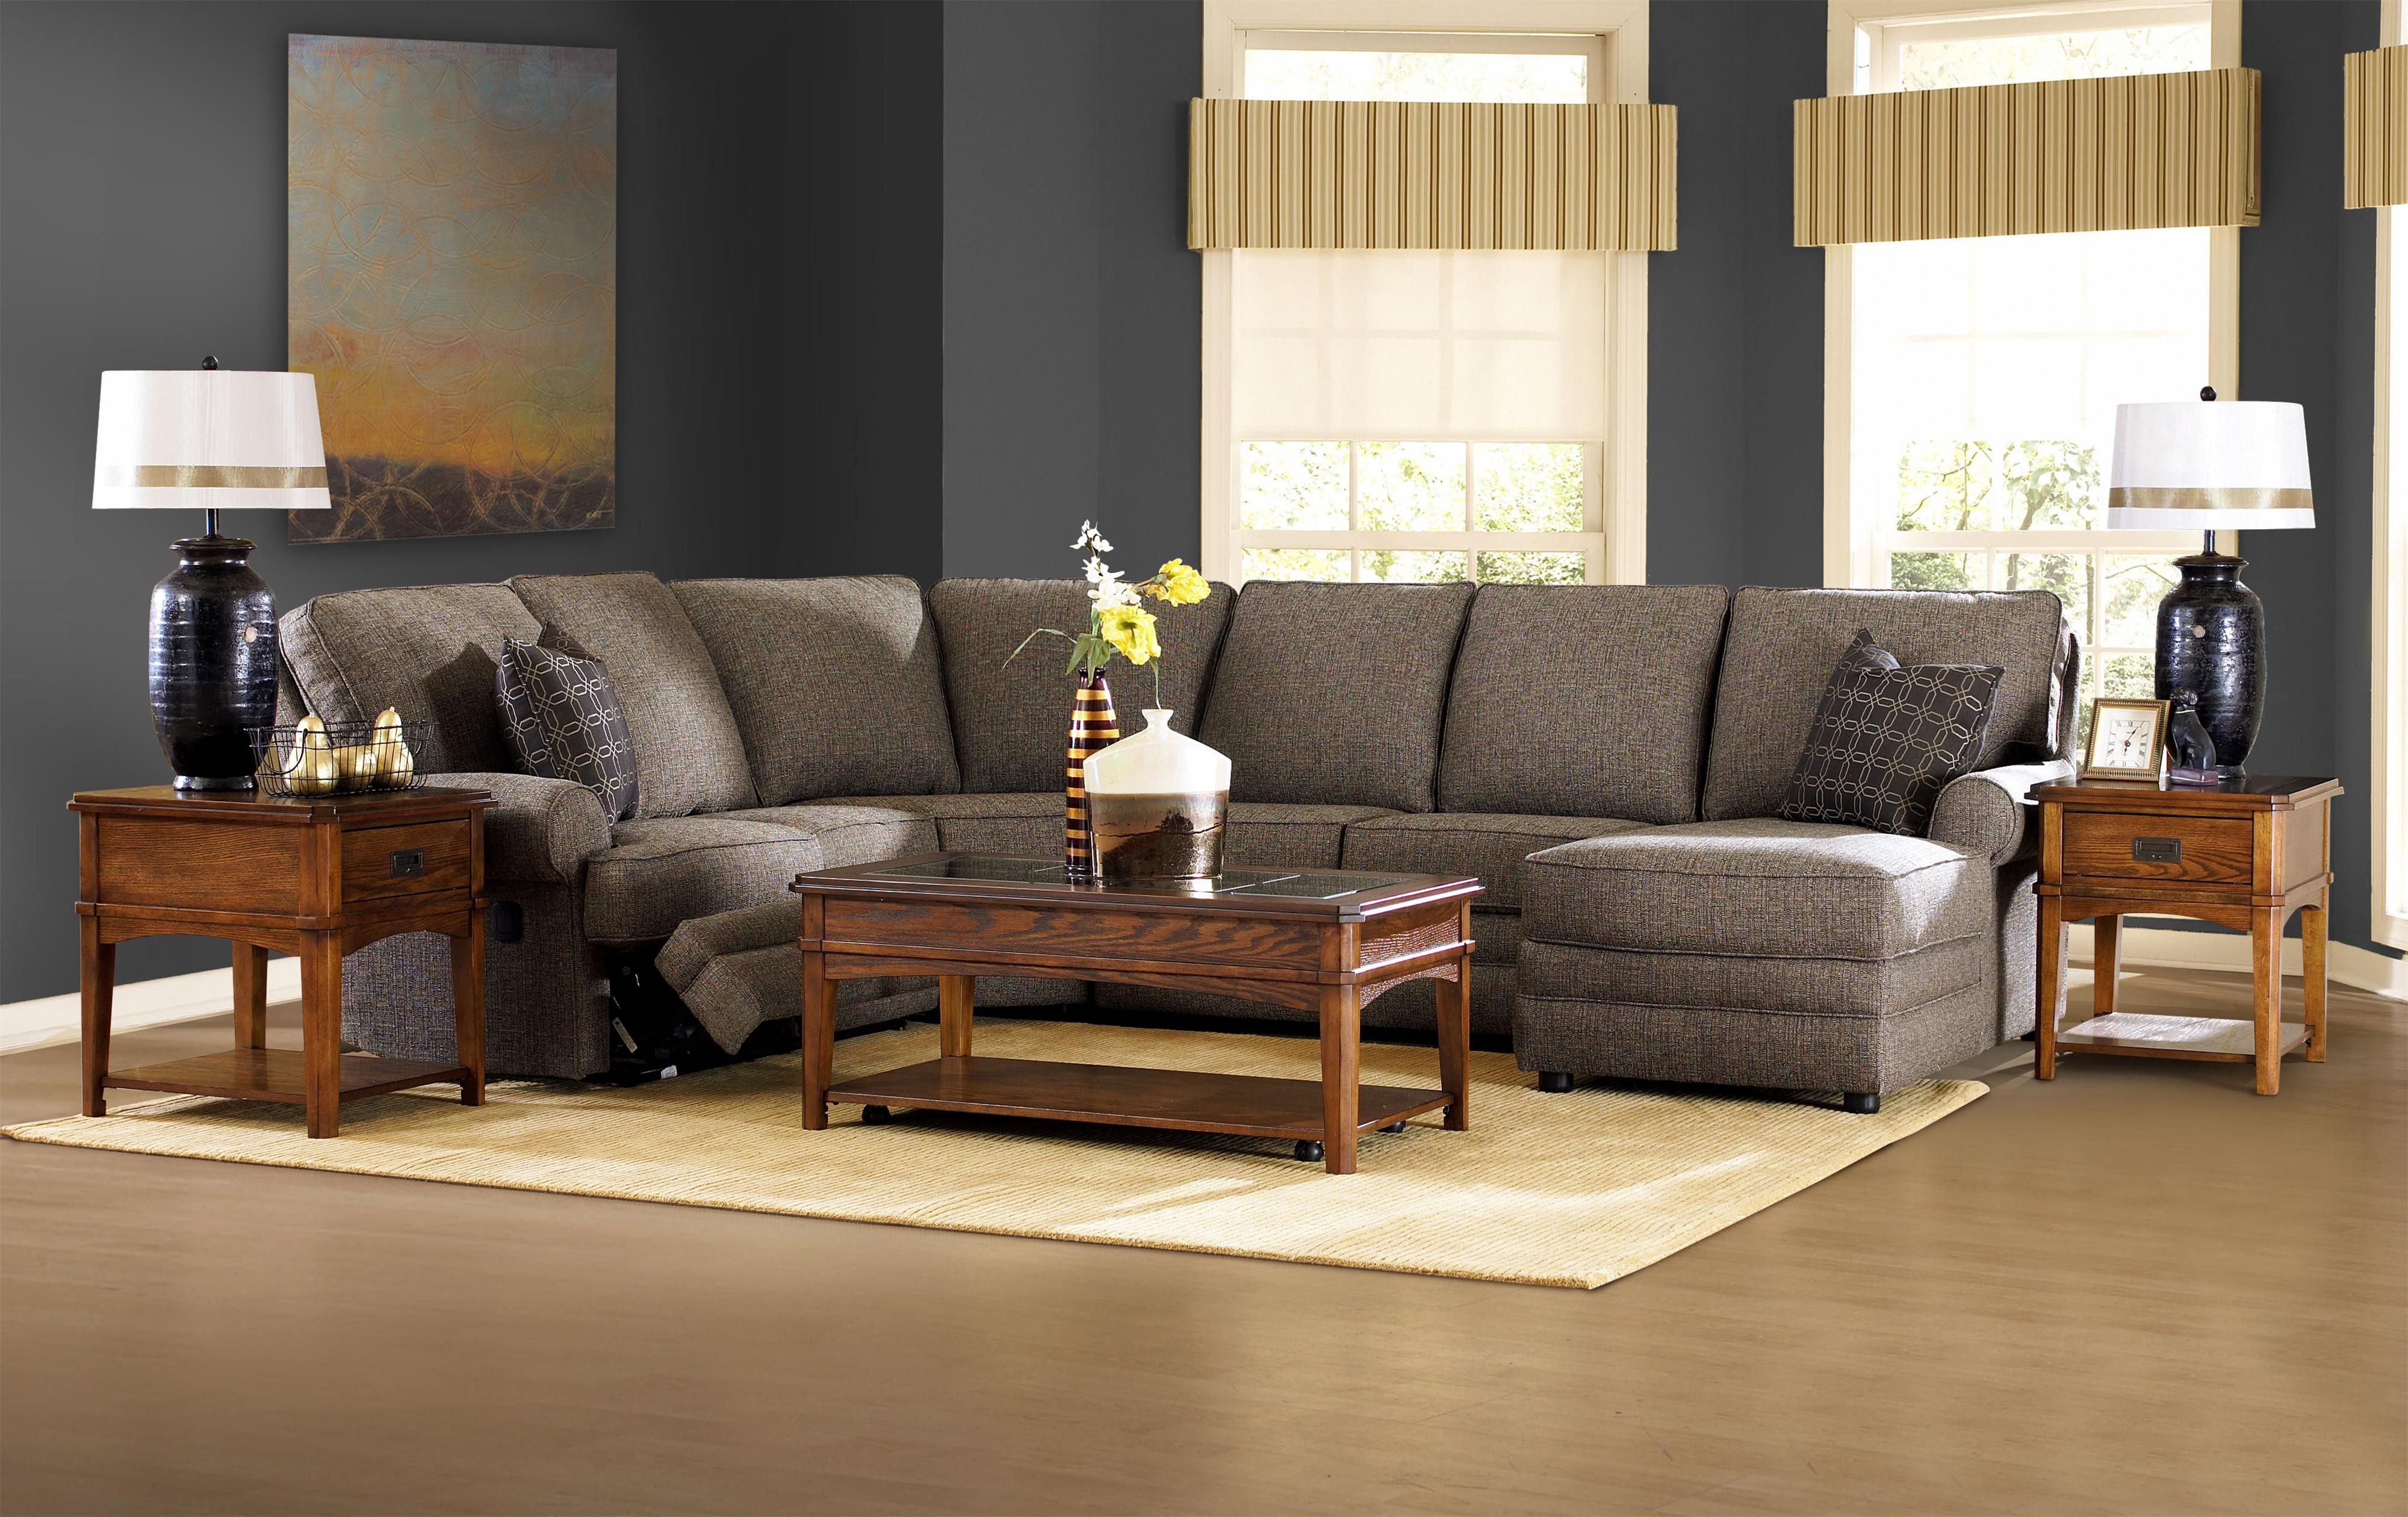 Hudson Leather Sofa Belleview Reclining Sectional With Right-side Chaise By